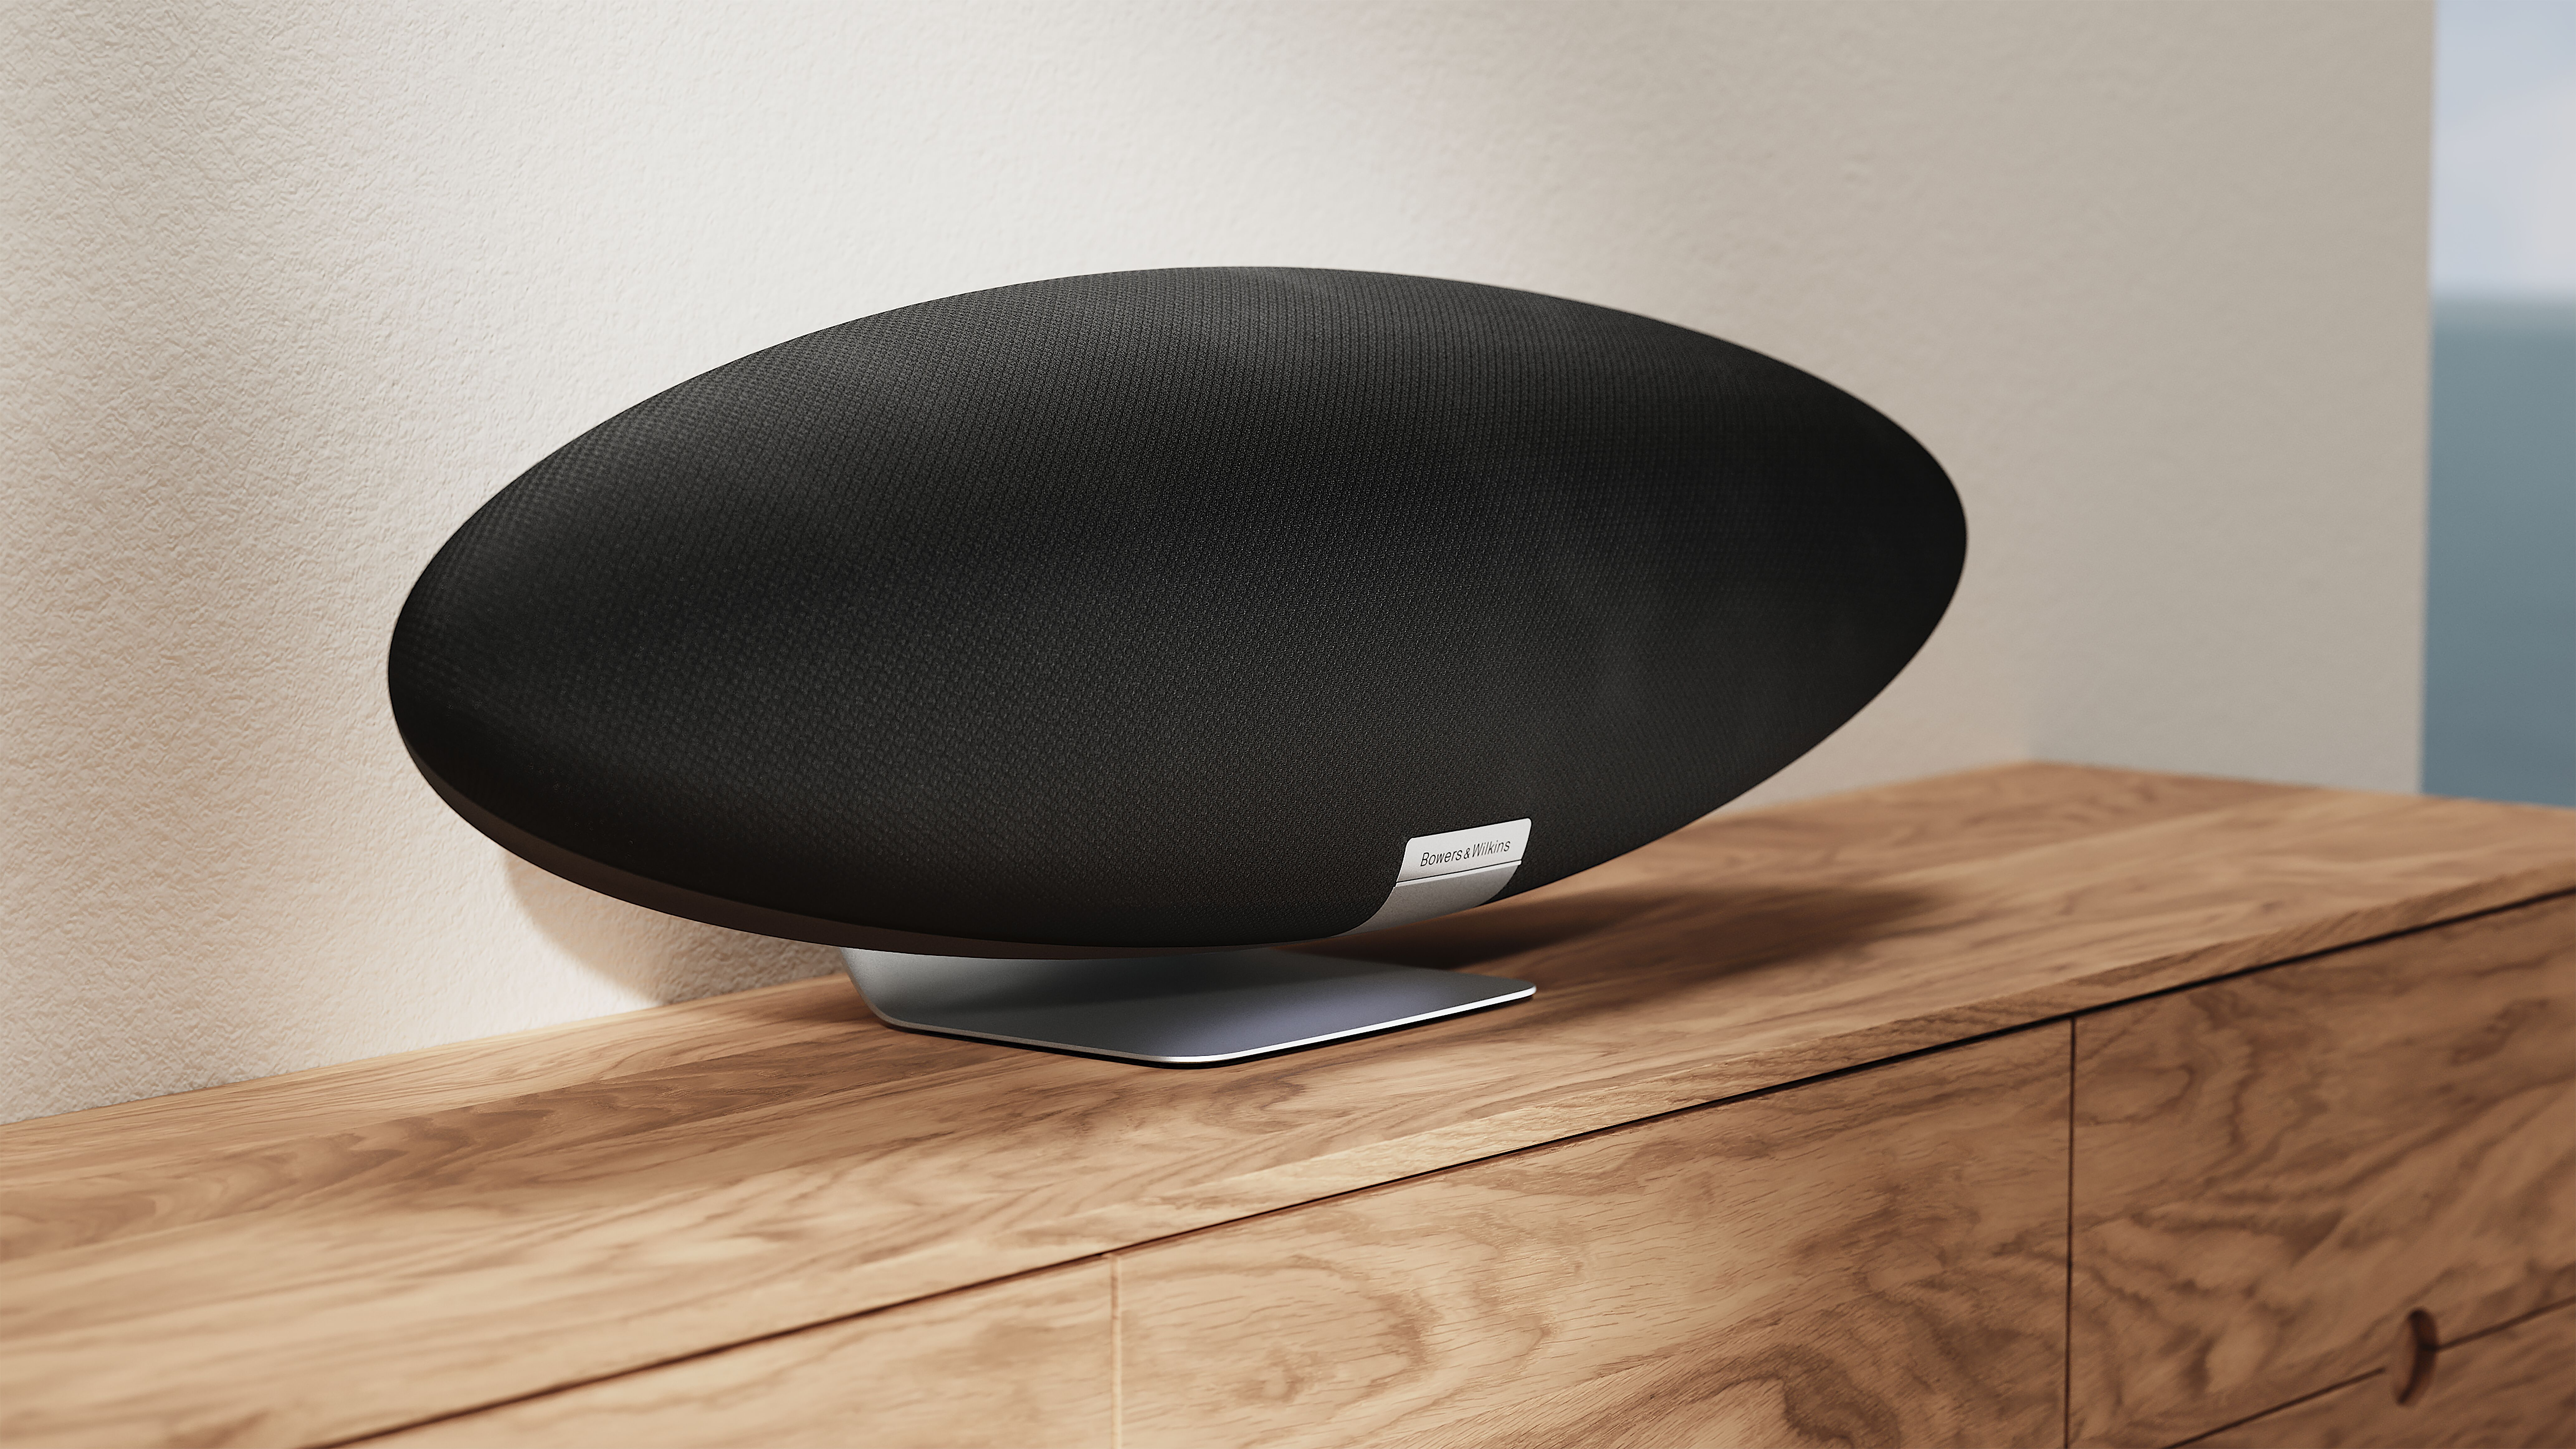 Stunning looks and premium streaming audio: The 2021 Zeppelin from UK audio brand Bowers & Wilkins